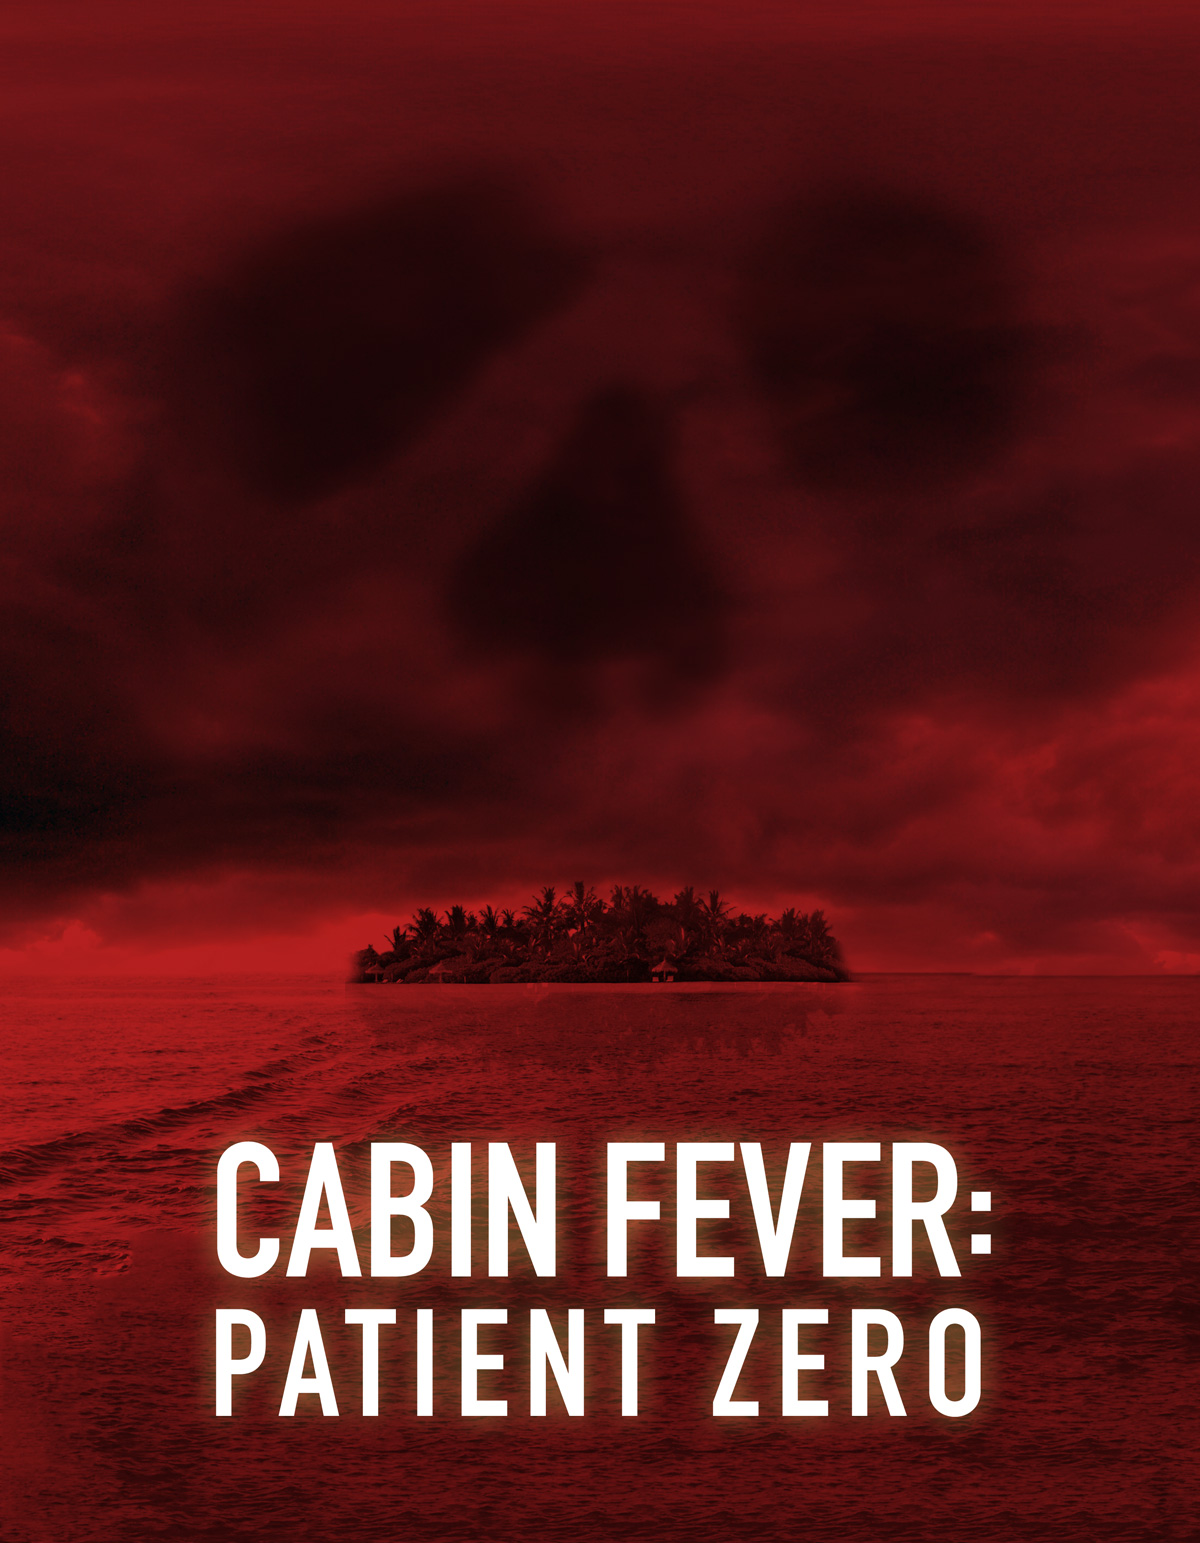 cabin fever images - photo #10